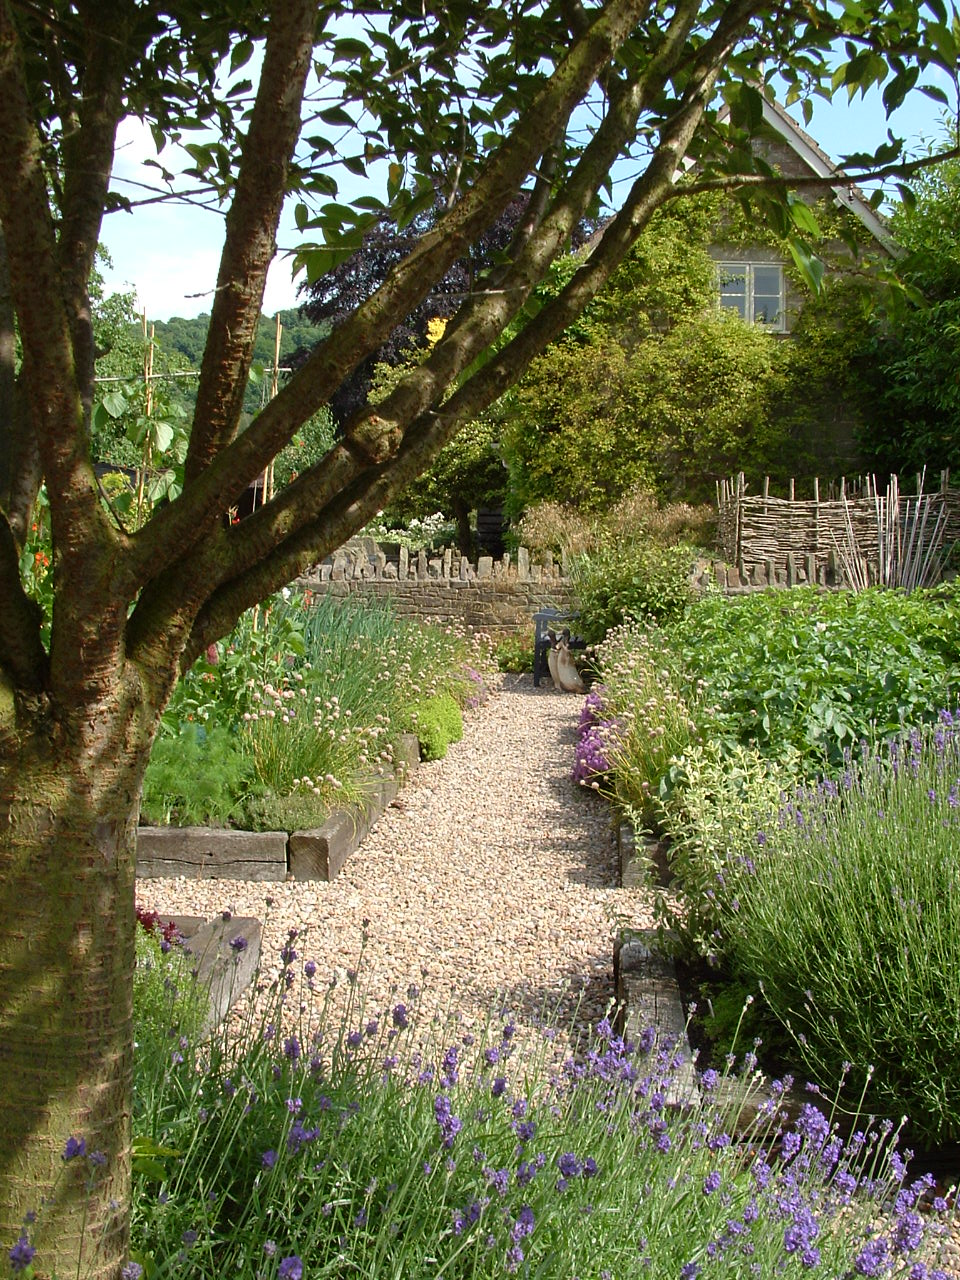 Straight gravel paths separate the formal raised timber beds of a formal vegetable garden